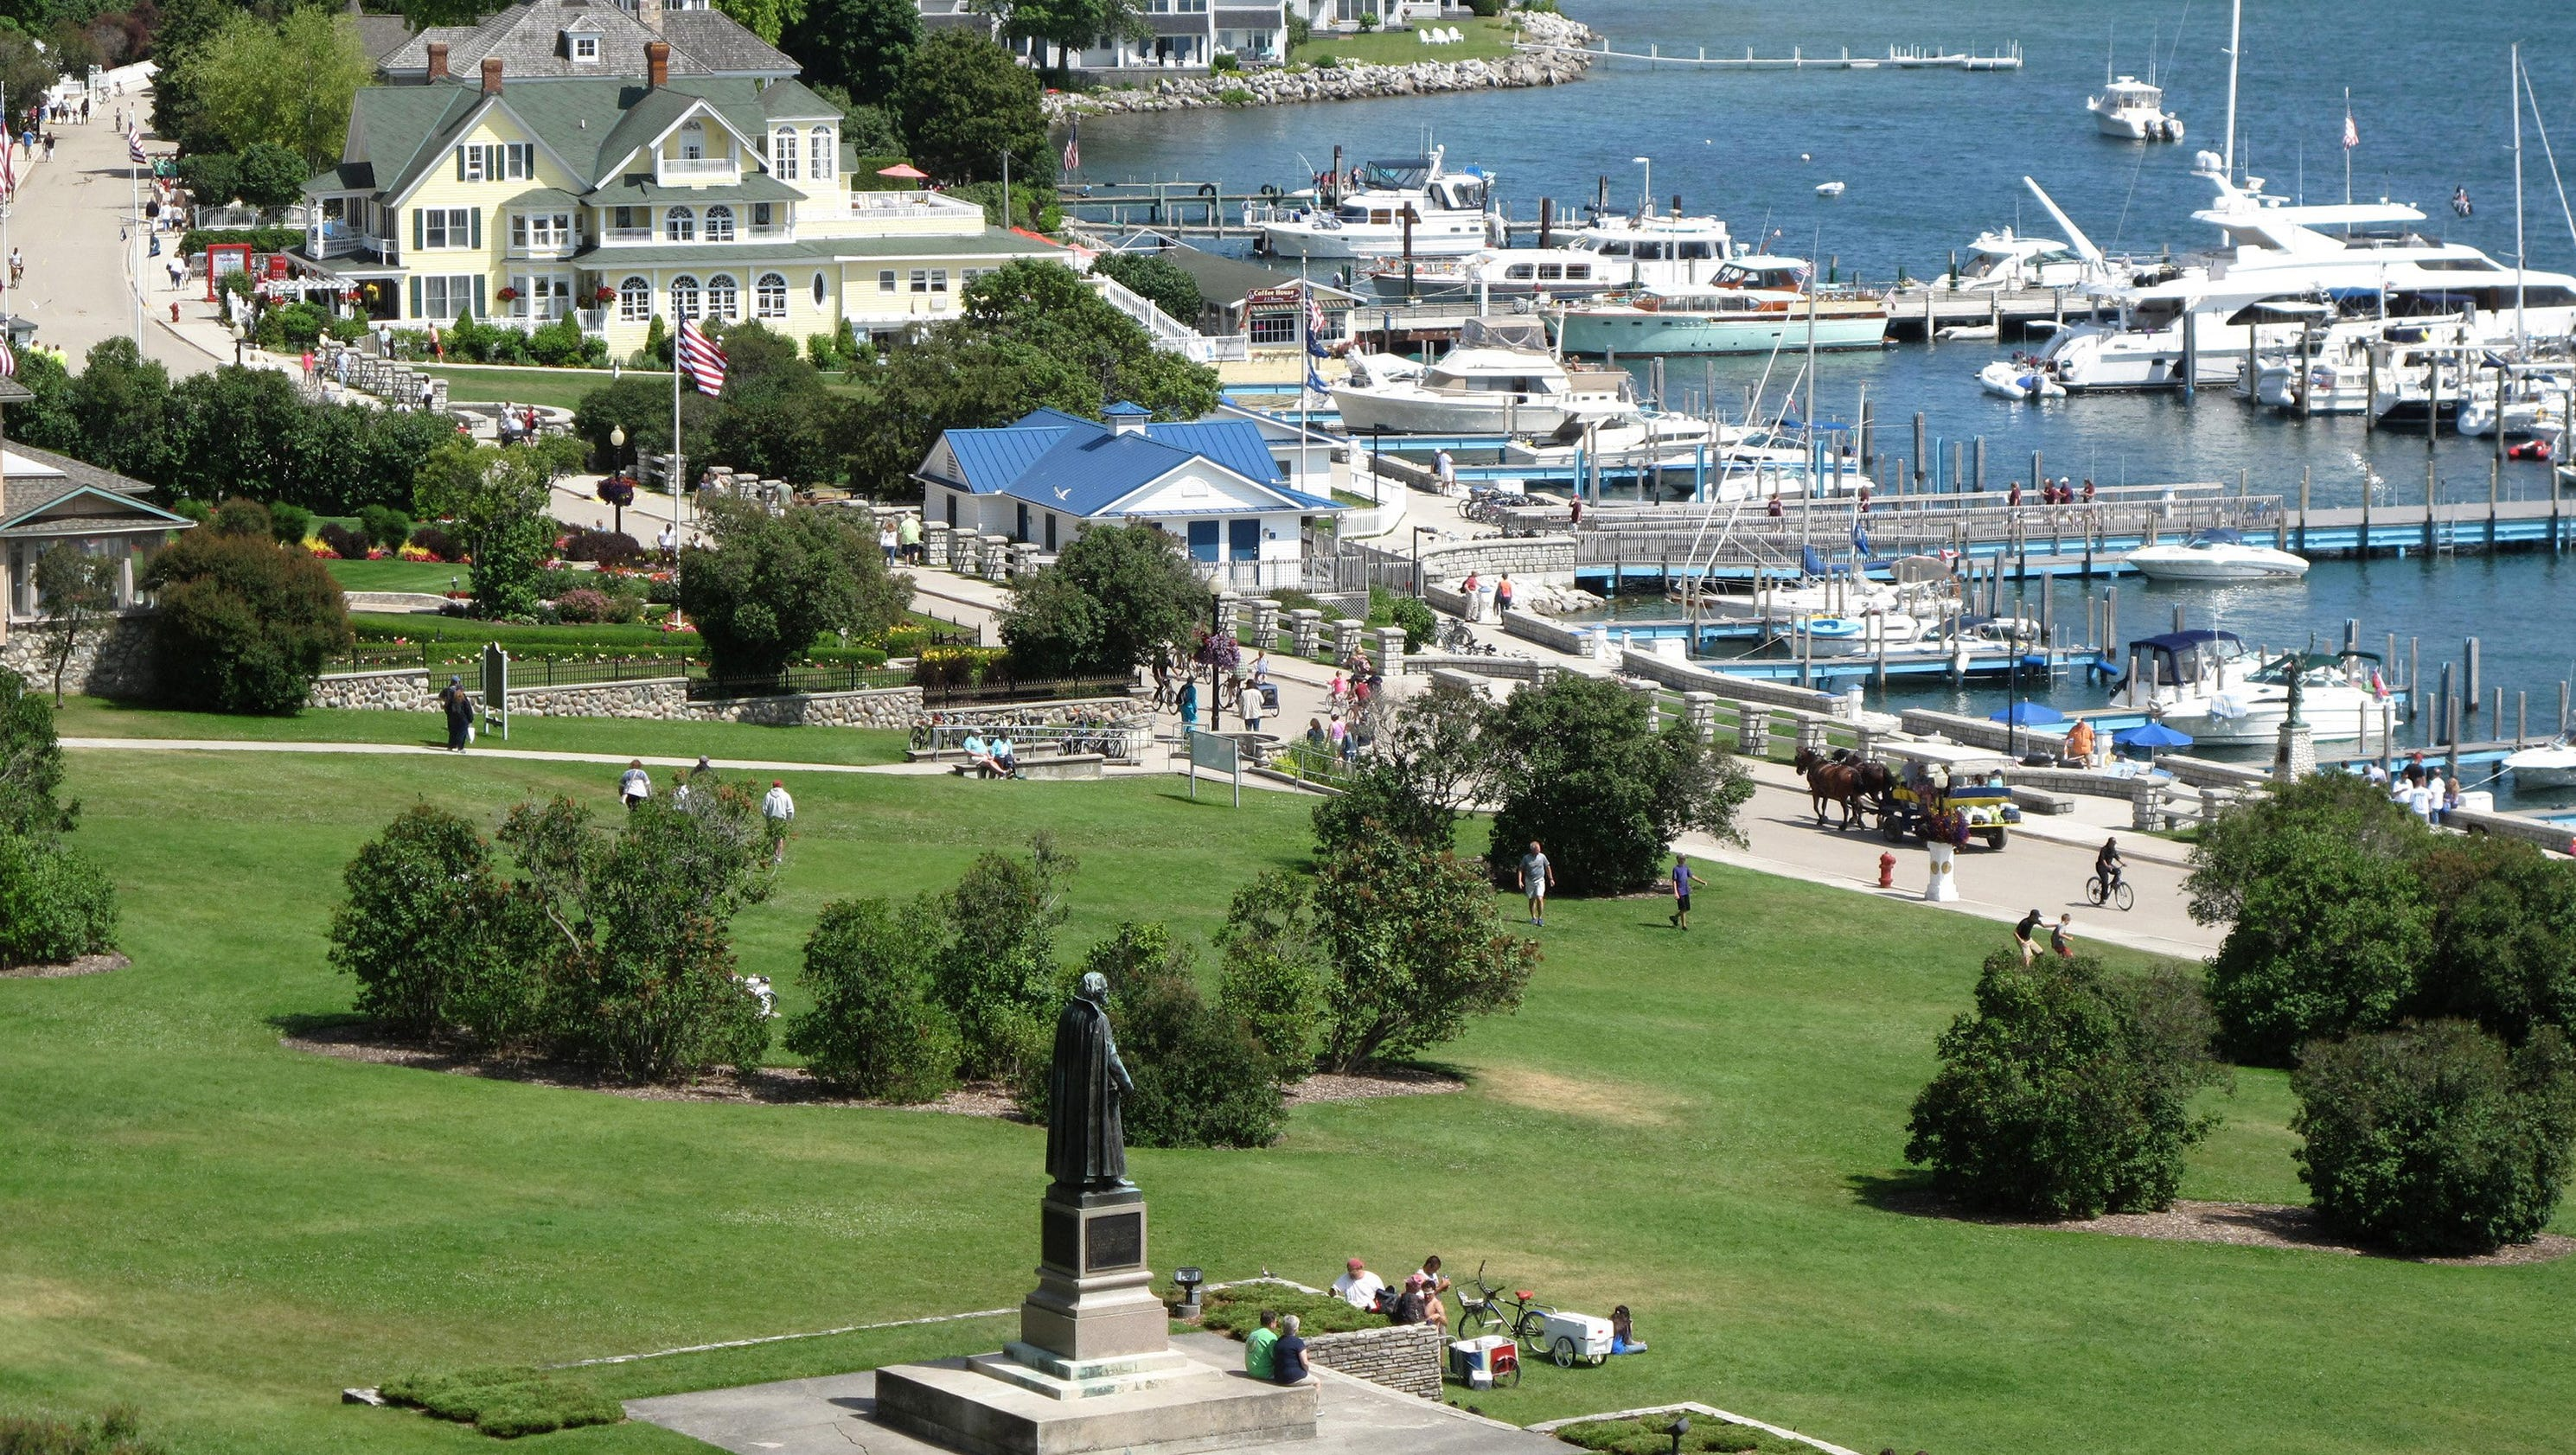 mackinac island chatrooms Since motor vehicles are not permitted to intrude on the natural beauty of mackinac island, there is no better way to visit this historic isle and legendary points of interest .